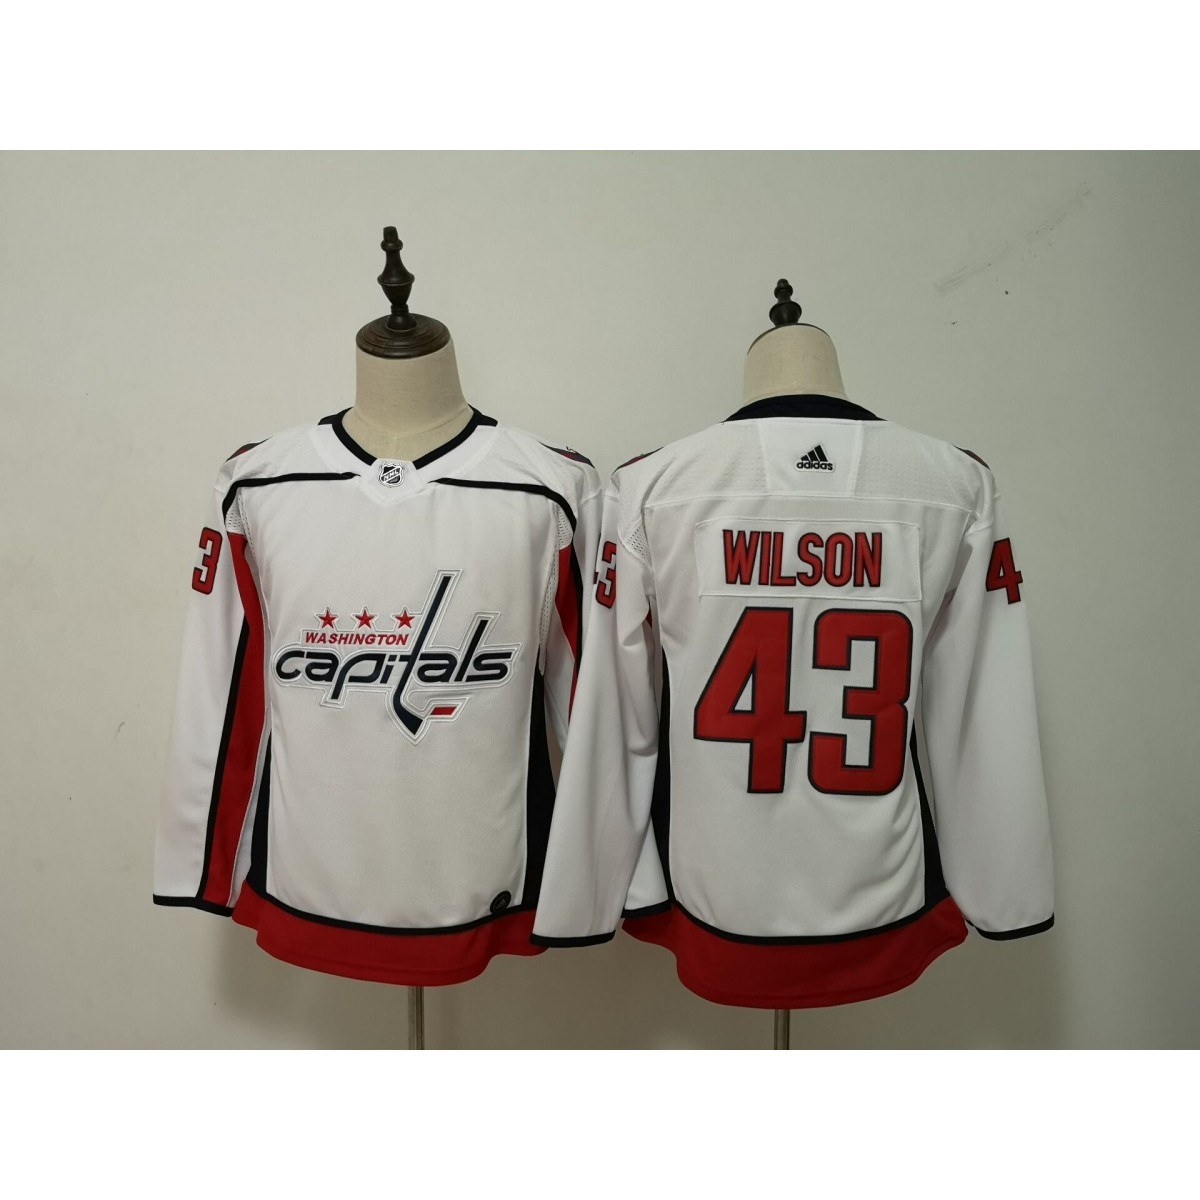 competitive price d1e18 2d0e2 NHL Capitals 43 Tom Wilson Adidas White Youth Jersey